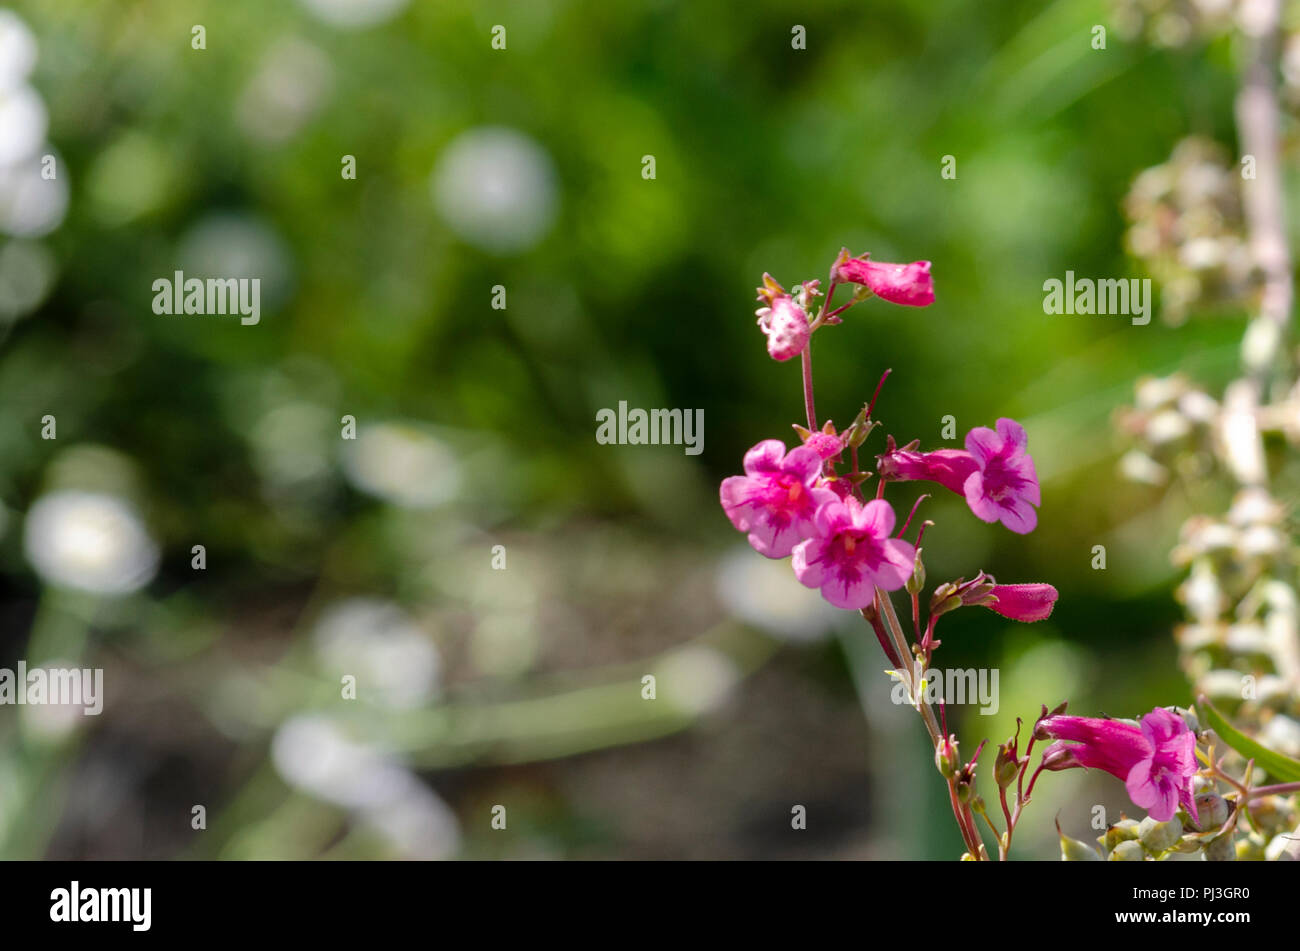 Pink Desert Flowers Against A Green Background Stock Photo